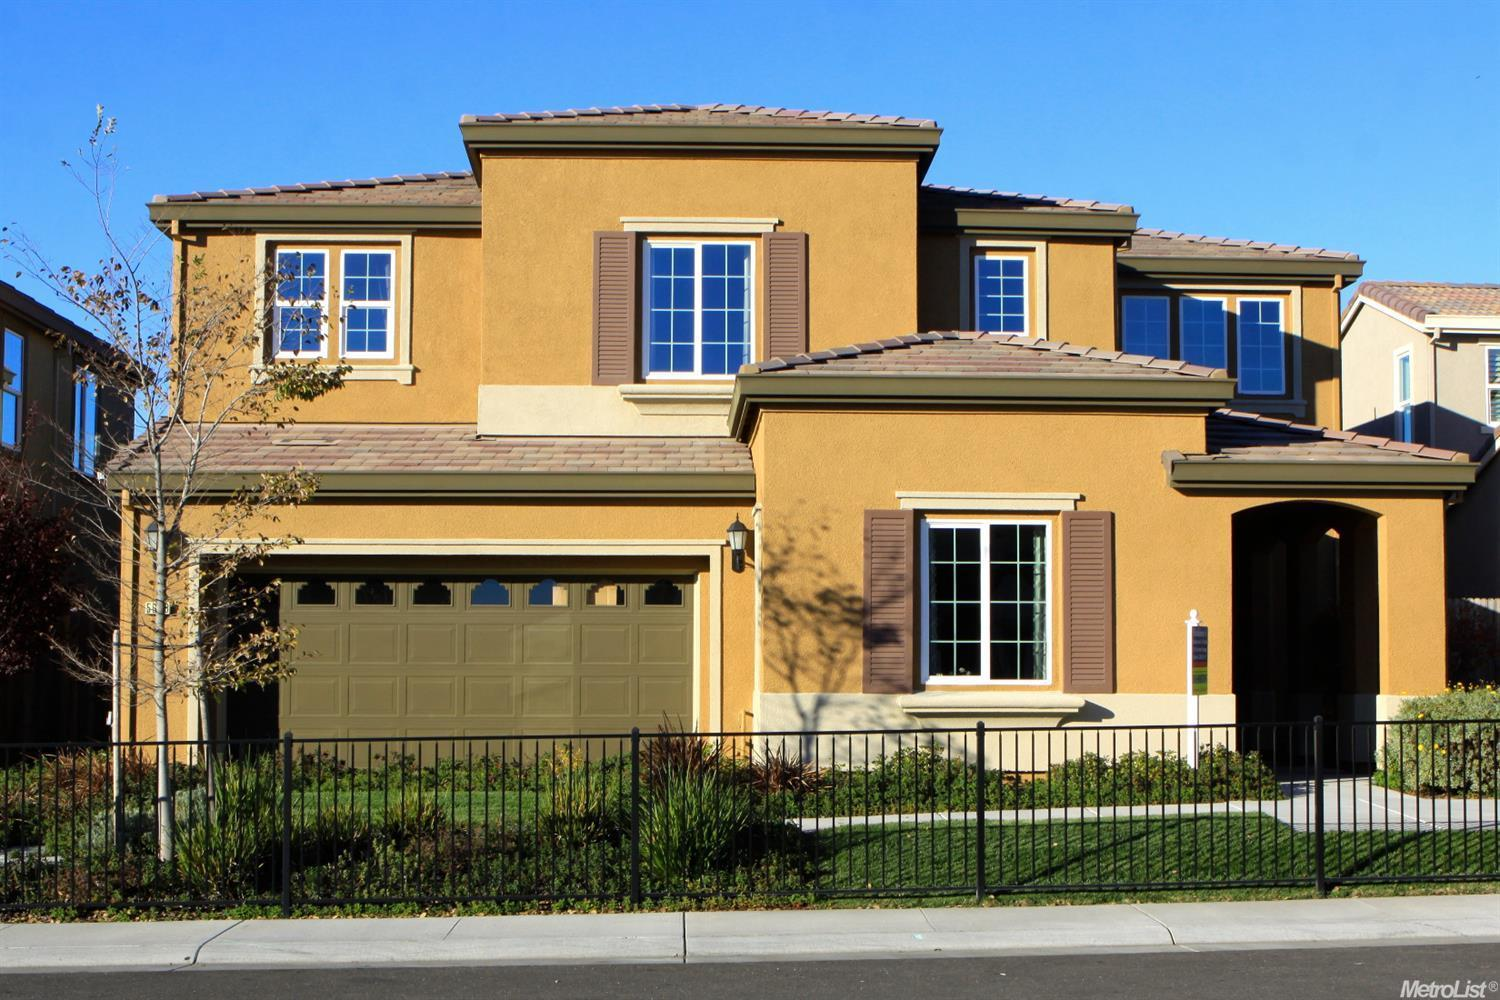 37 Model Home Furniture Sale Sacramento 100 Expo Home Design Idea 1000 Images About